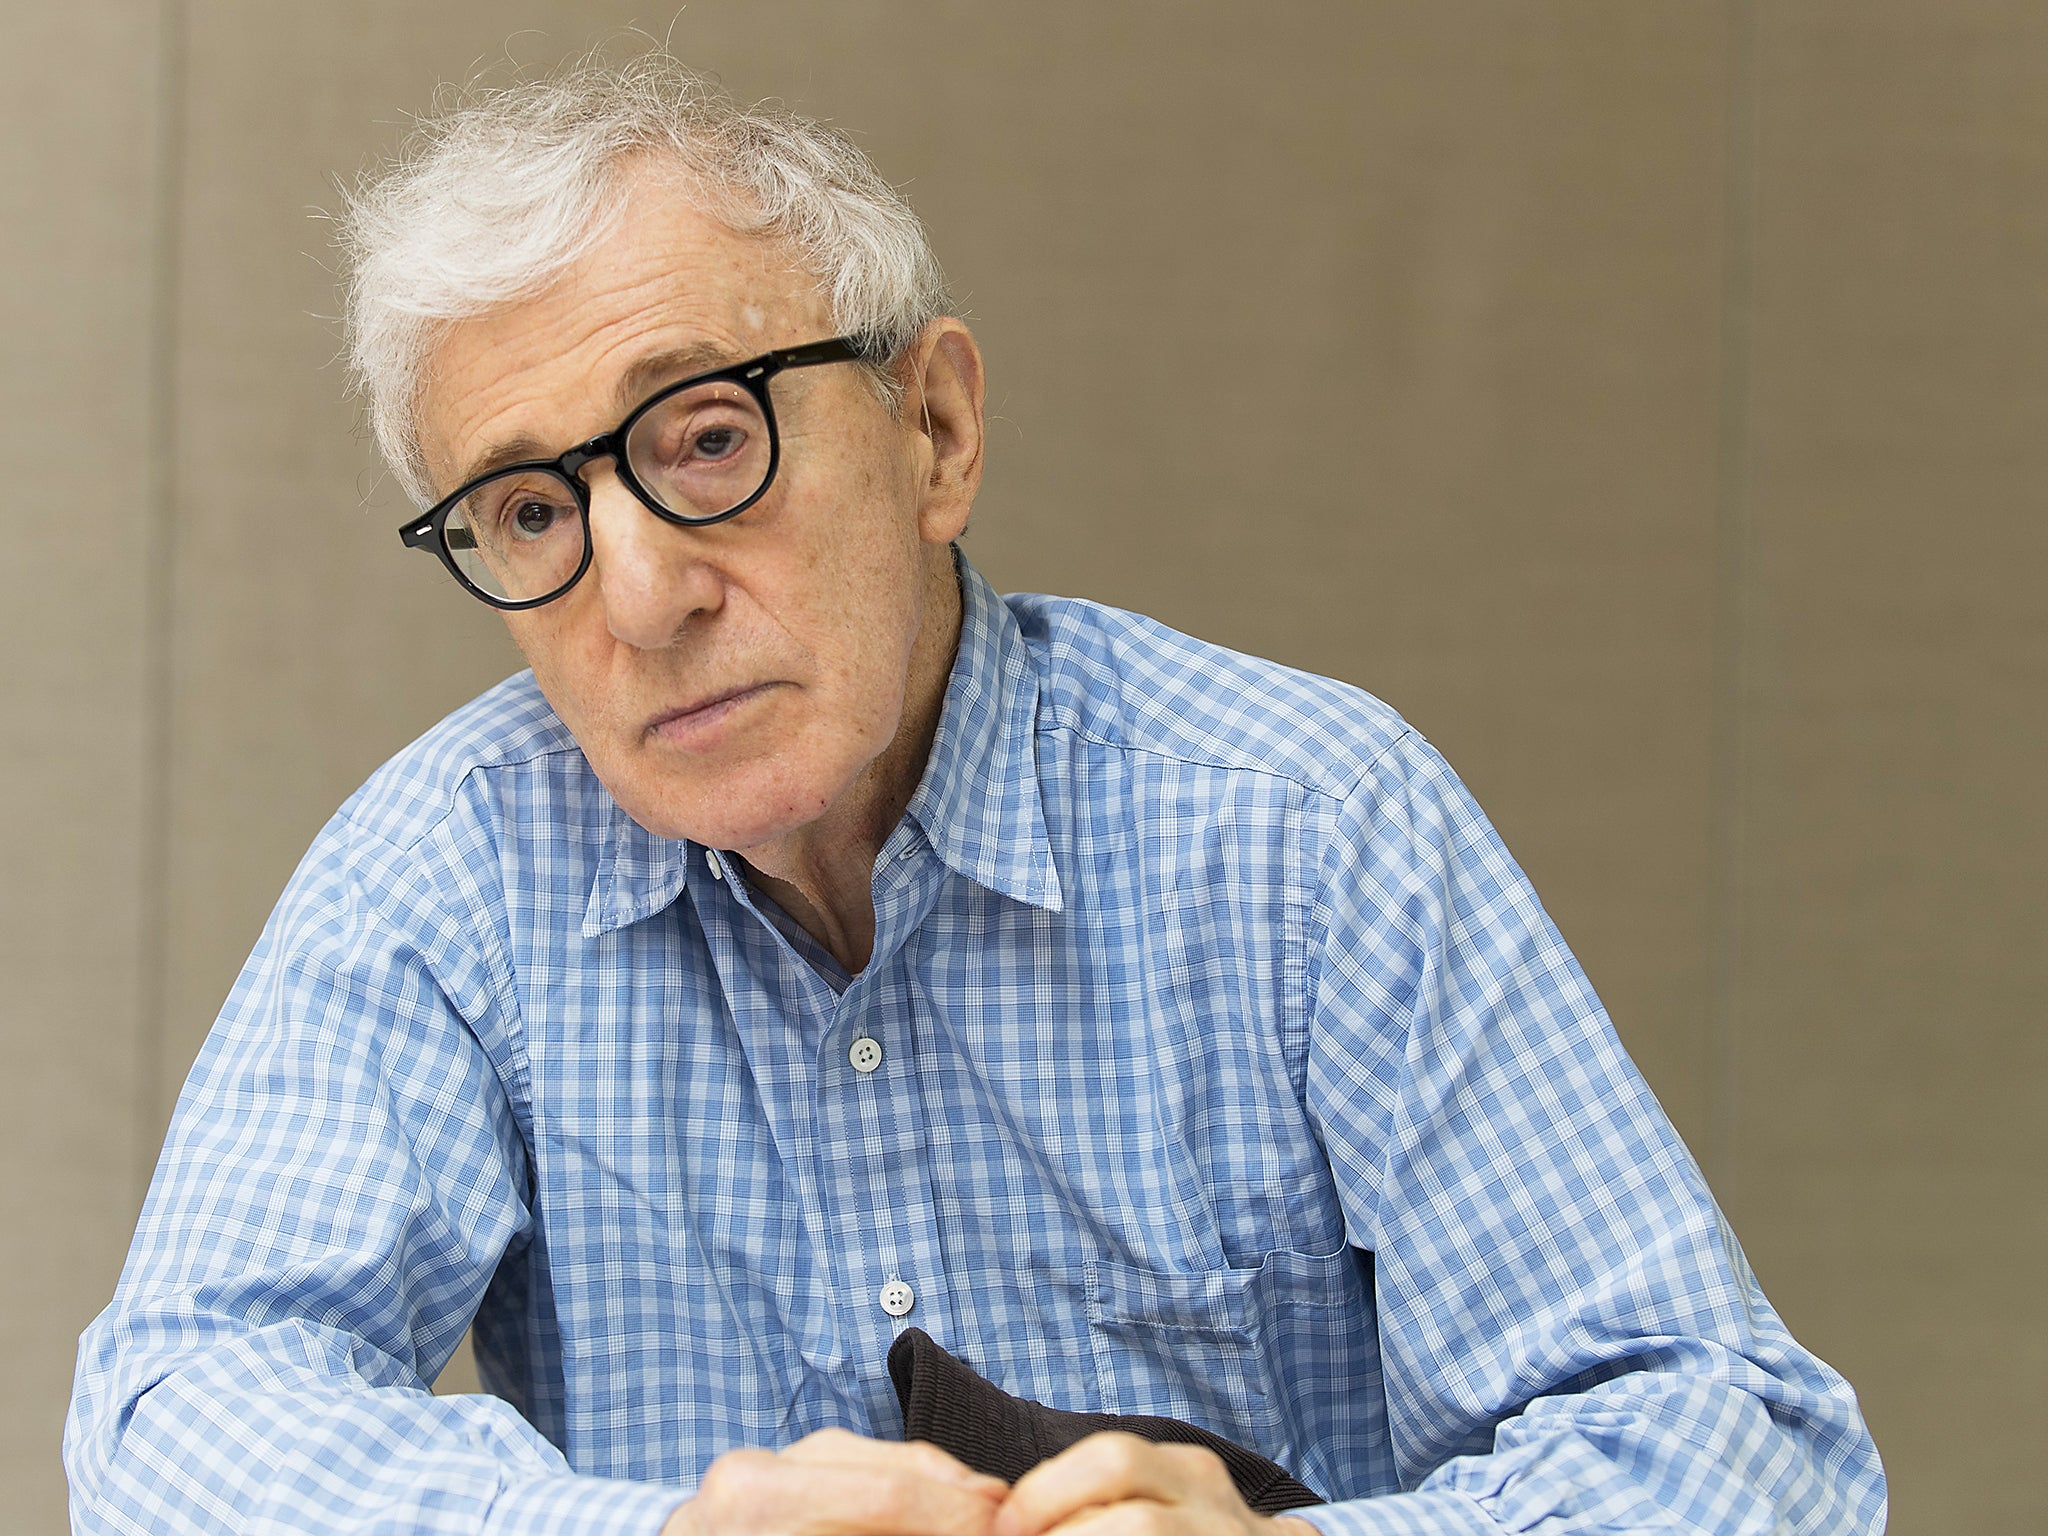 Woody Allen rejected accusations of violence by his adopted daughter 03.02.2014 60